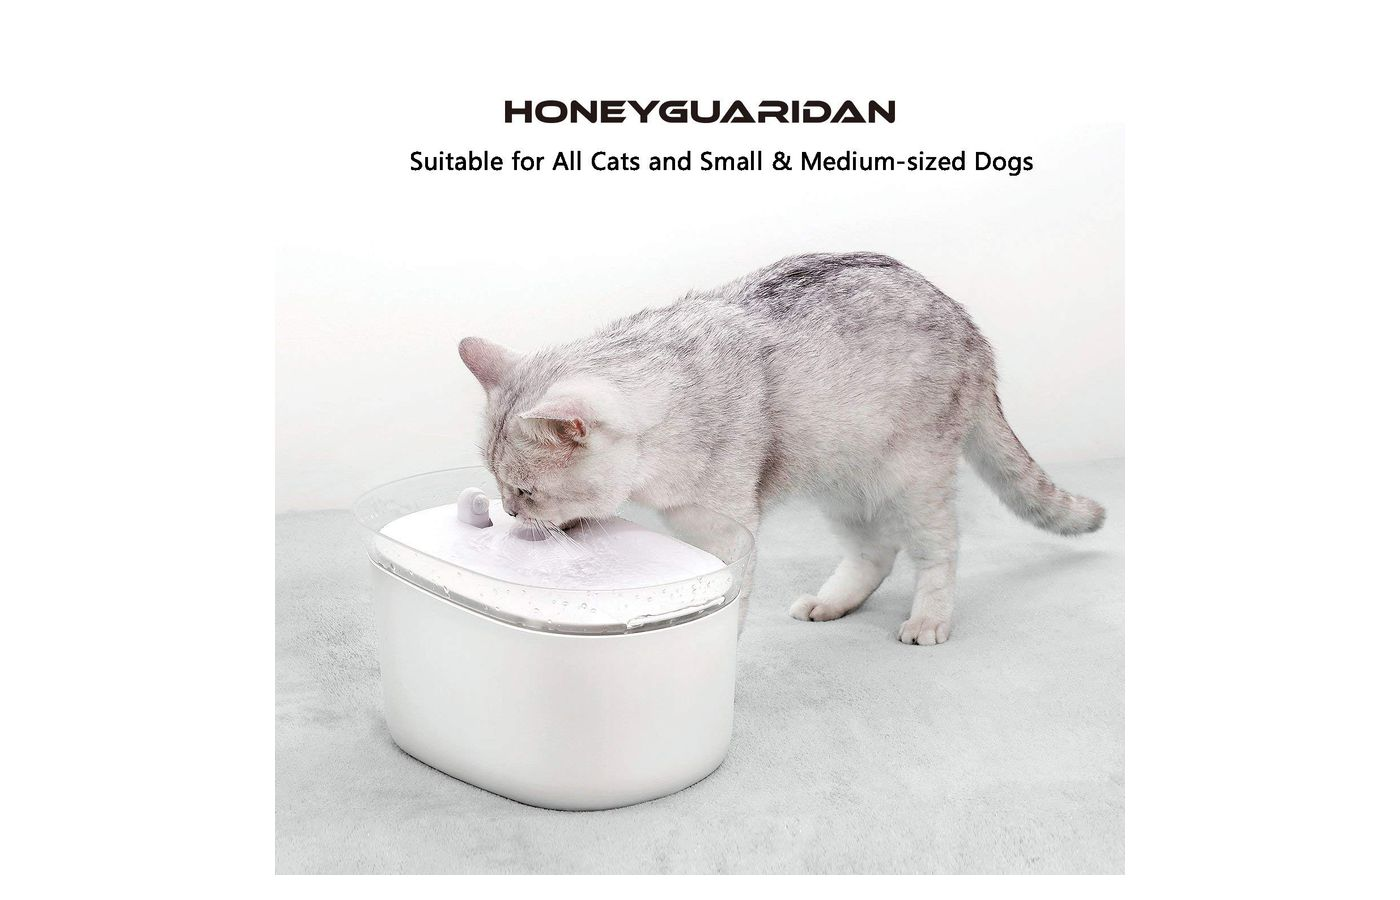 HoneyGuaridan Smart Automatic Pet Water Fountain Dispenser